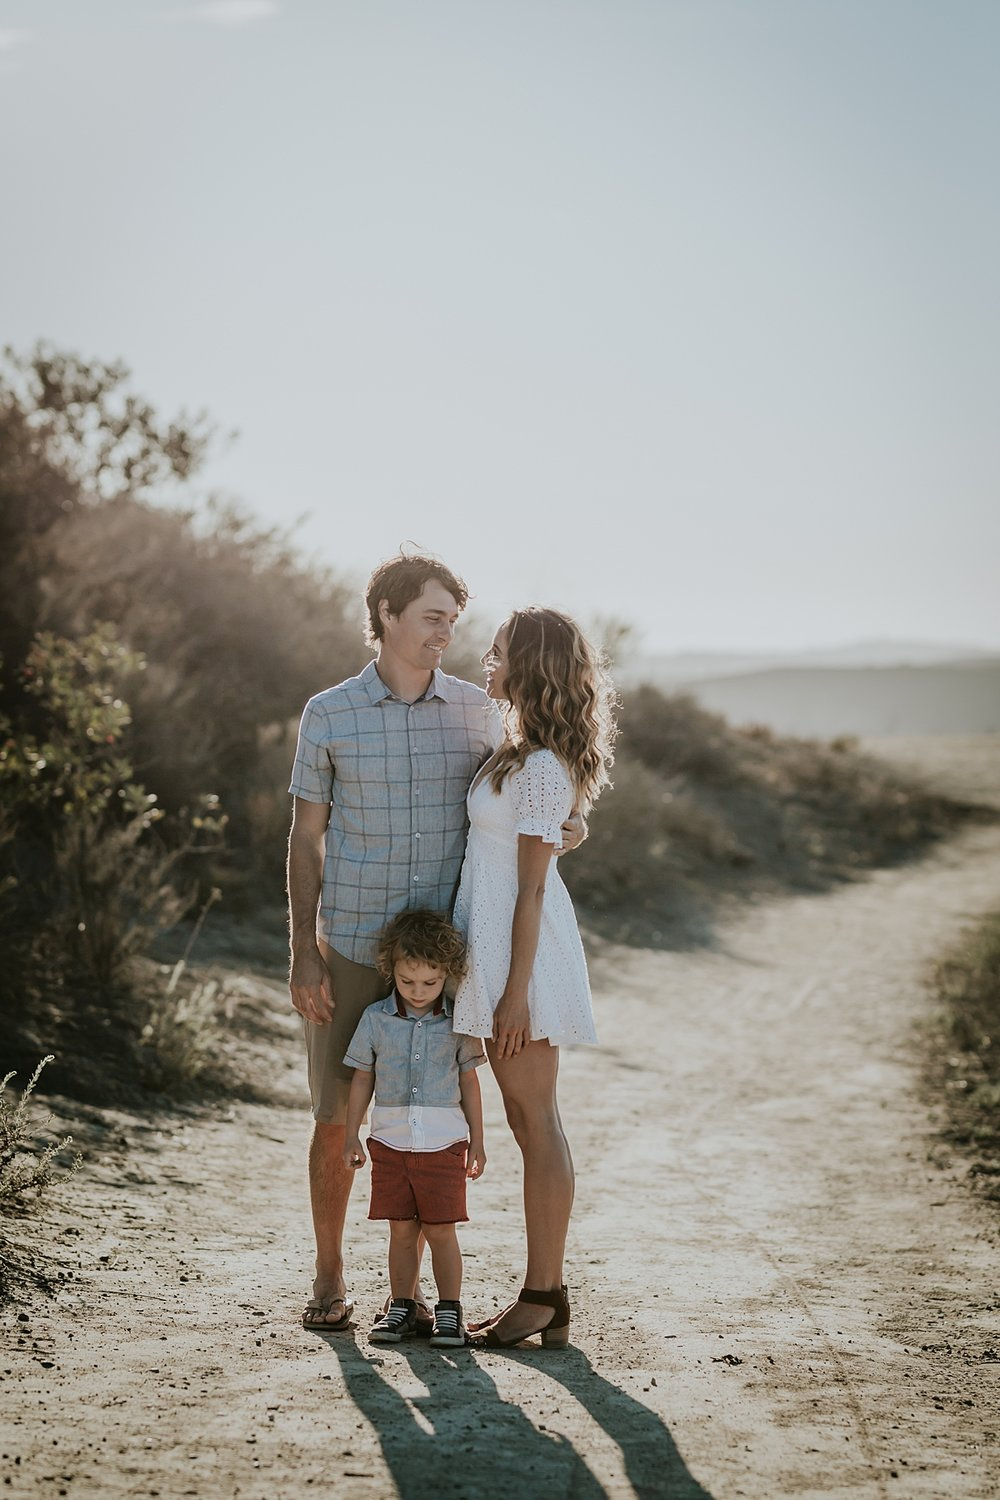 photo by Orange County family photographer Krystil McDowall. Photo of dad, mom and son standing on dirt road during outdoor family lifestyle photo session at Top of the World Laguna Beach California